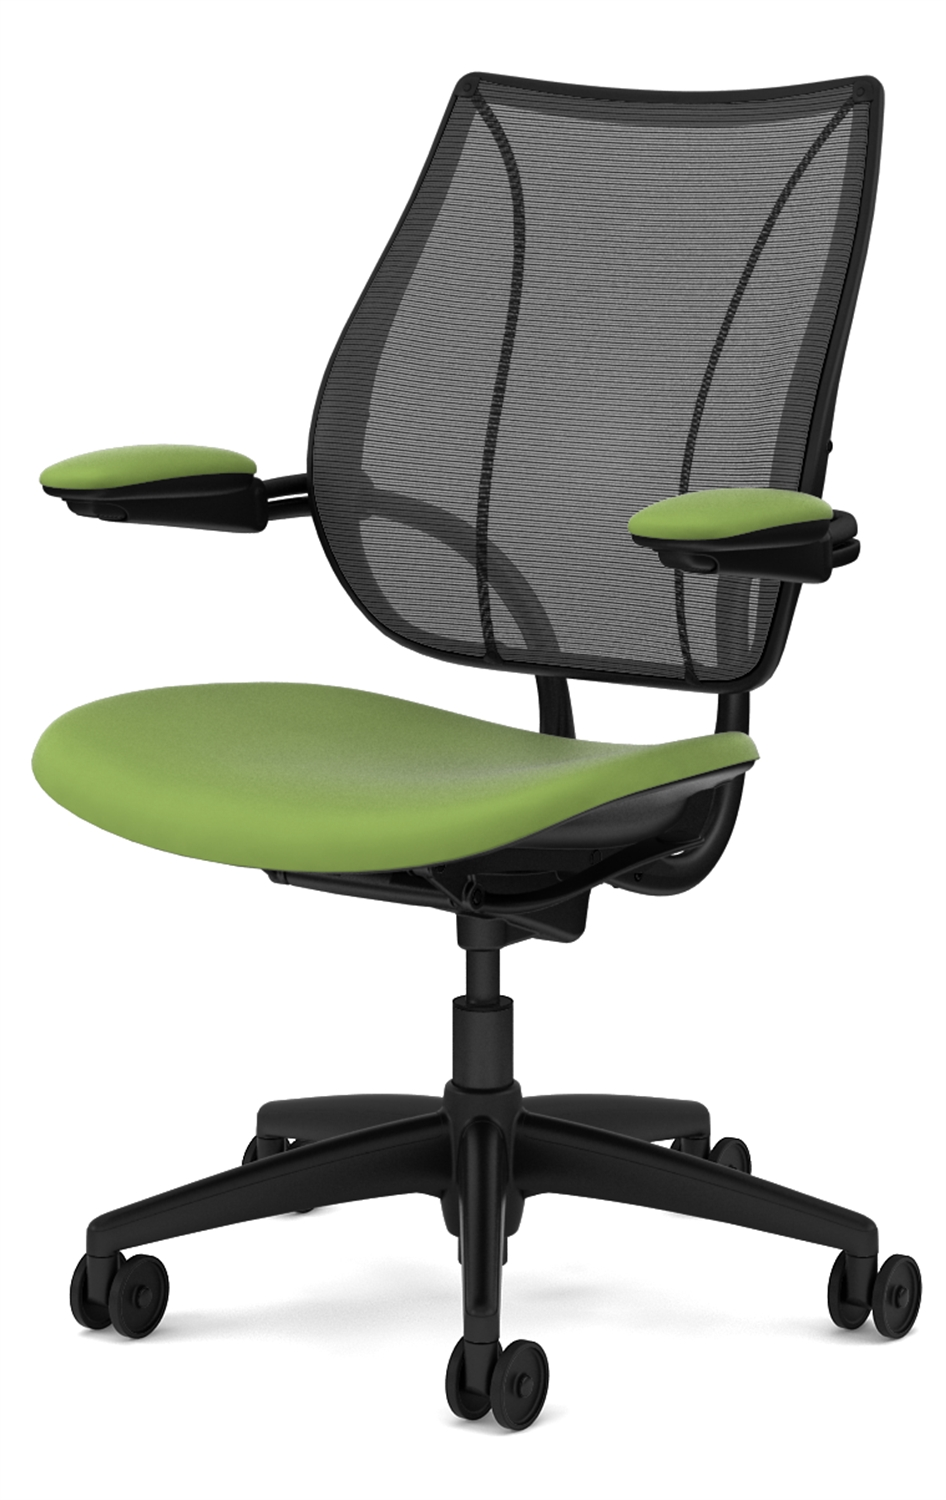 Executive Office Chairs With Adjustable Arms For Widely Used Humanscale Liberty Chair With Adjustable Gel Arms (Gallery 11 of 20)